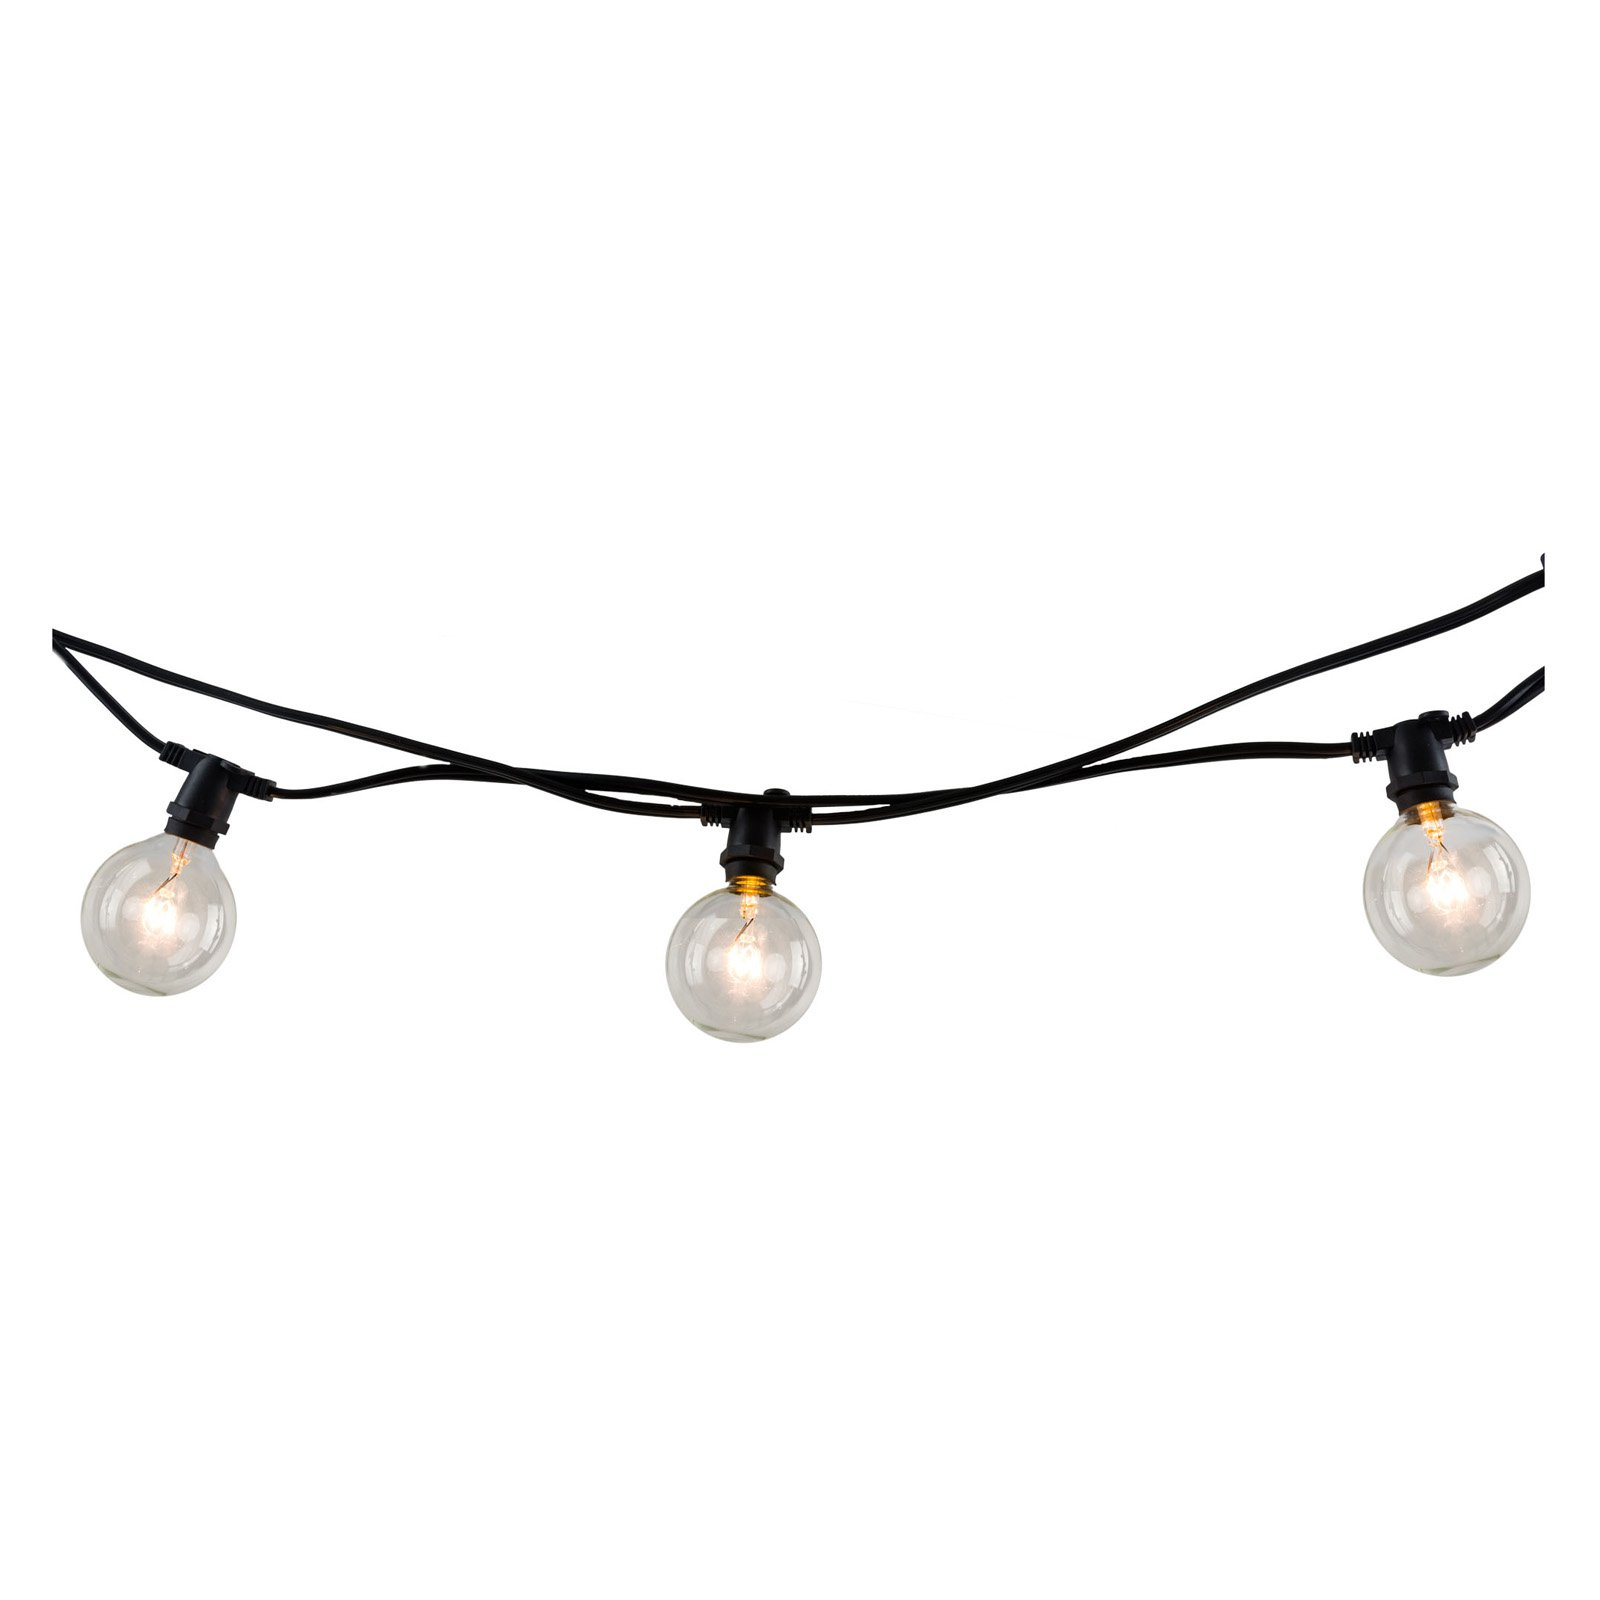 Bulbrite STRING10 E12 14 ft. Indoor and Outdoor String Light with 10 Clear Incandescent Lights by